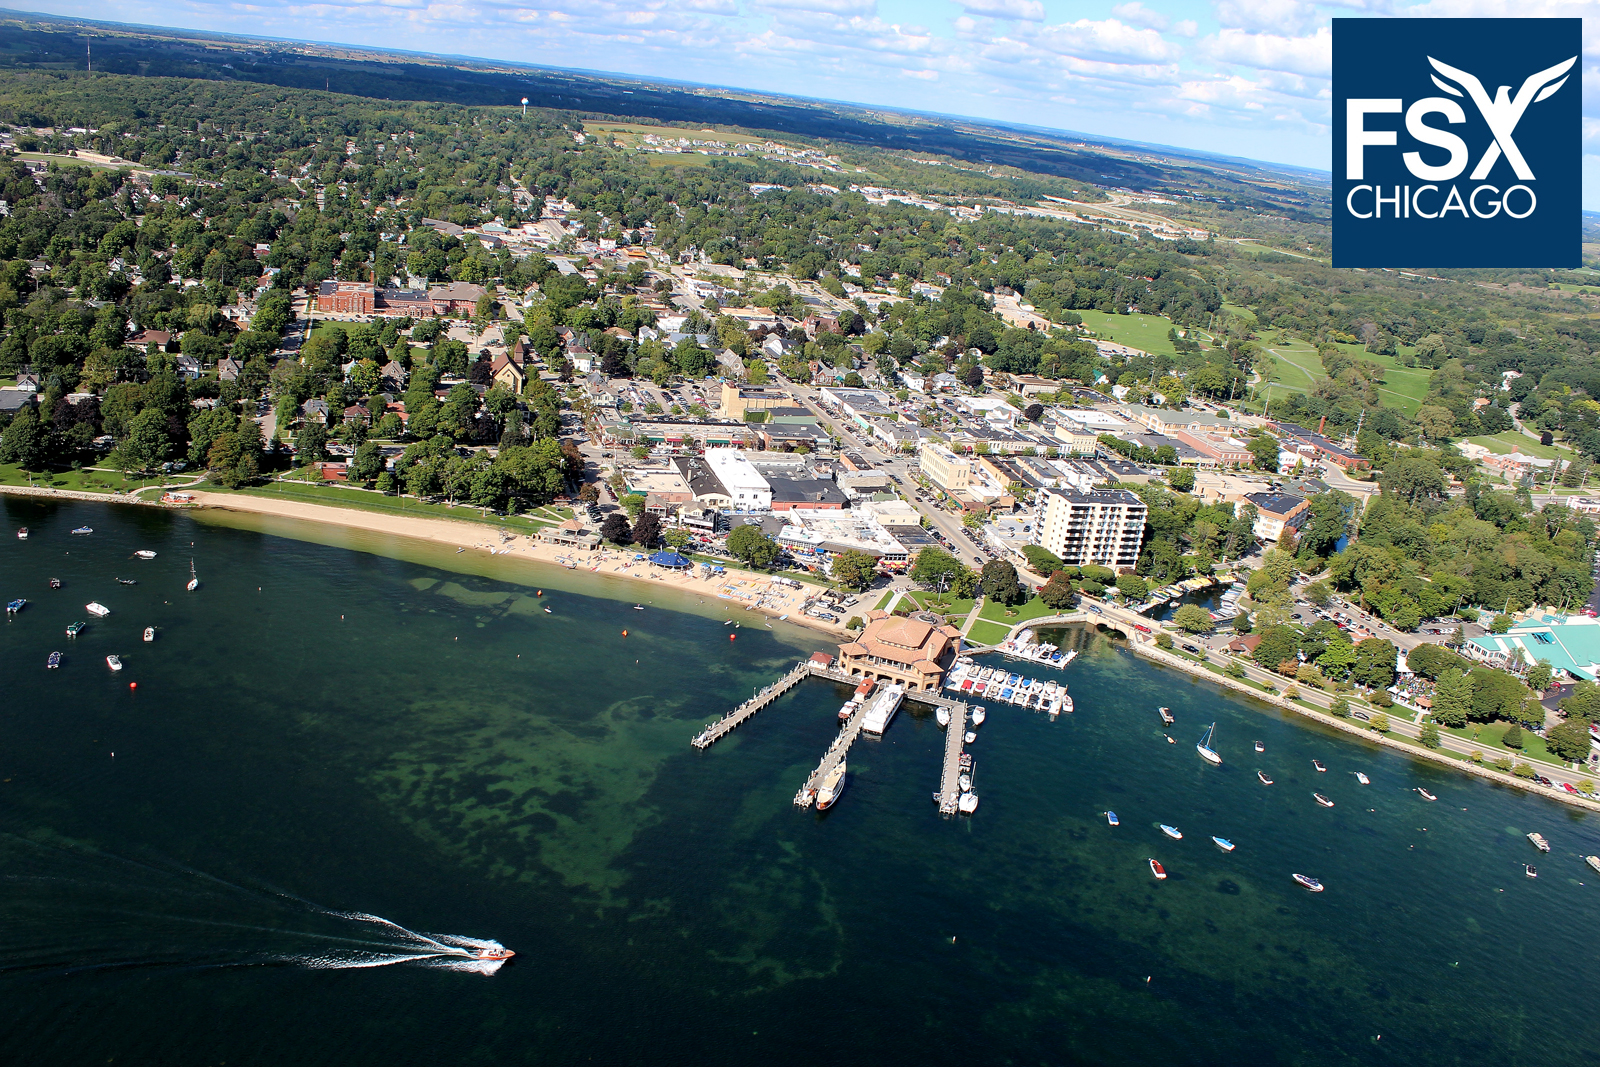 Professional Aerial Photography - call 708-299-8246